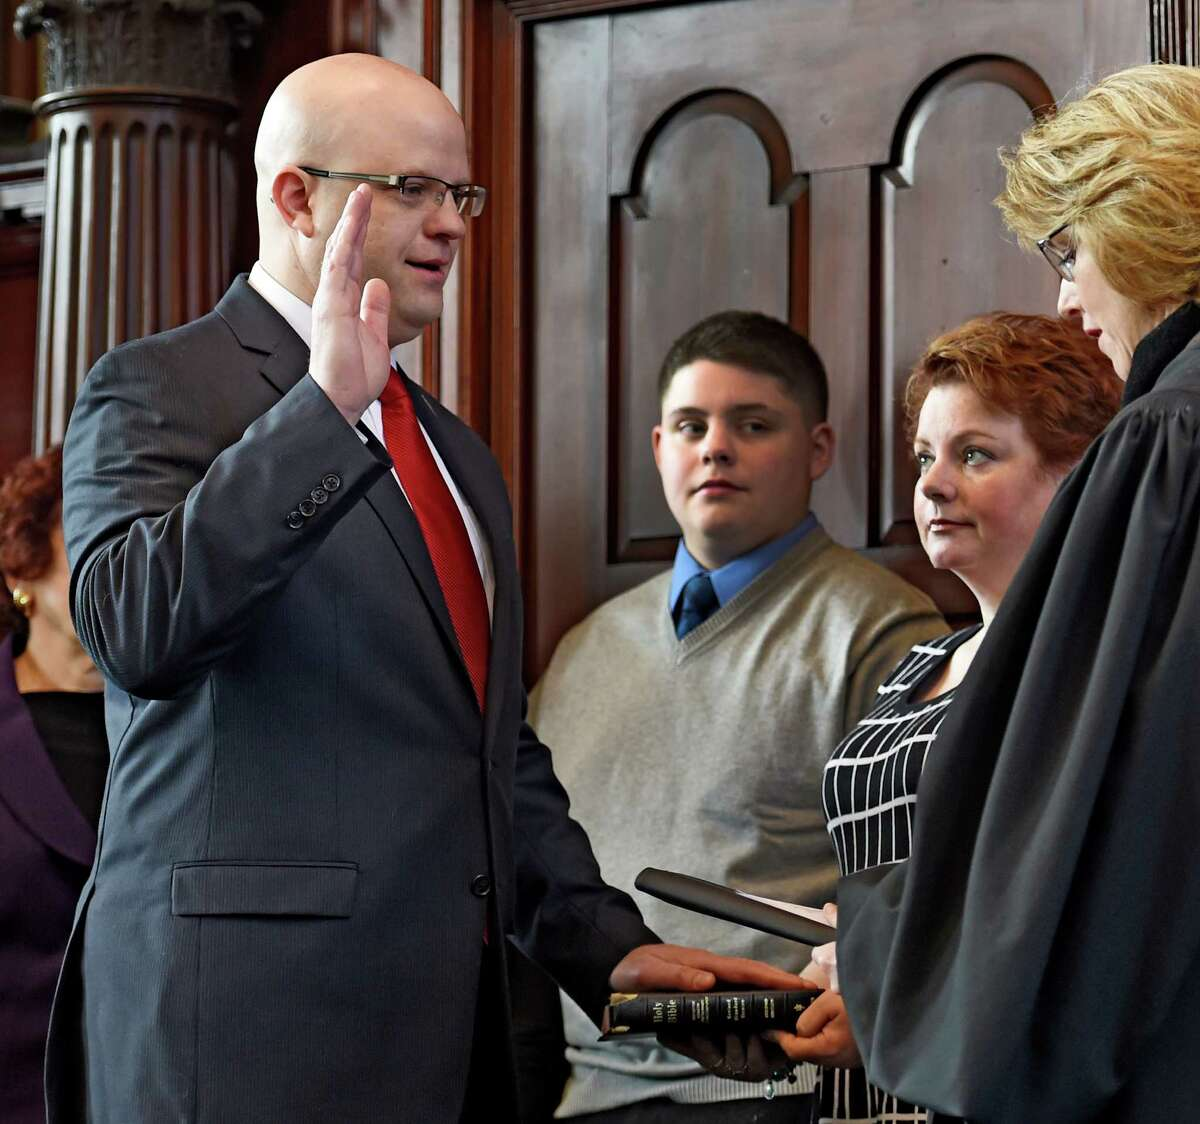 Rensselaer County District Attorney Joel Abelove, left, was sworn in on Jan. 1, 2015, by County Judge Debra Young as family members watched at the Rensselaer County Courthouse in Troy, N.Y. (Skip Dickstein/Times Union archive)